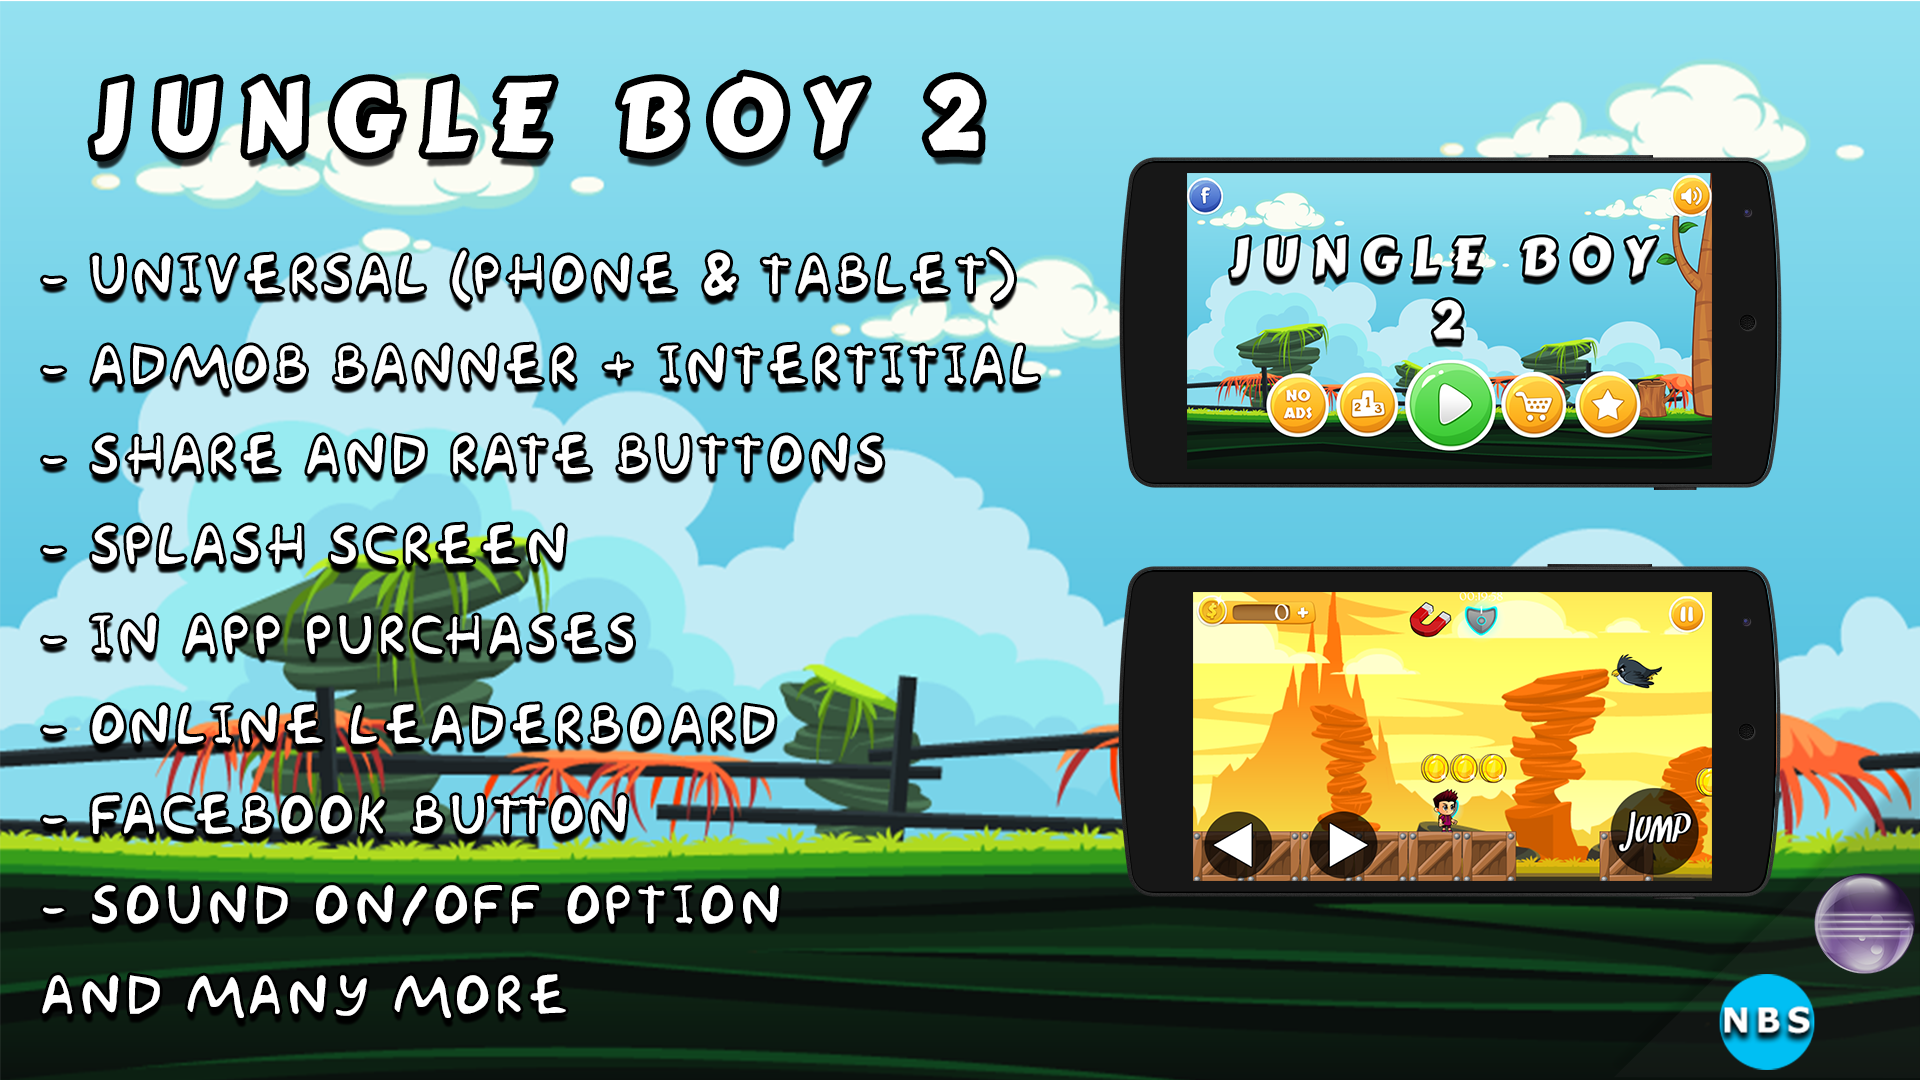 Jungle Boy 2 Android Game, Easy to reskin  Admob Ads, IAP, Multiple  characters, And more